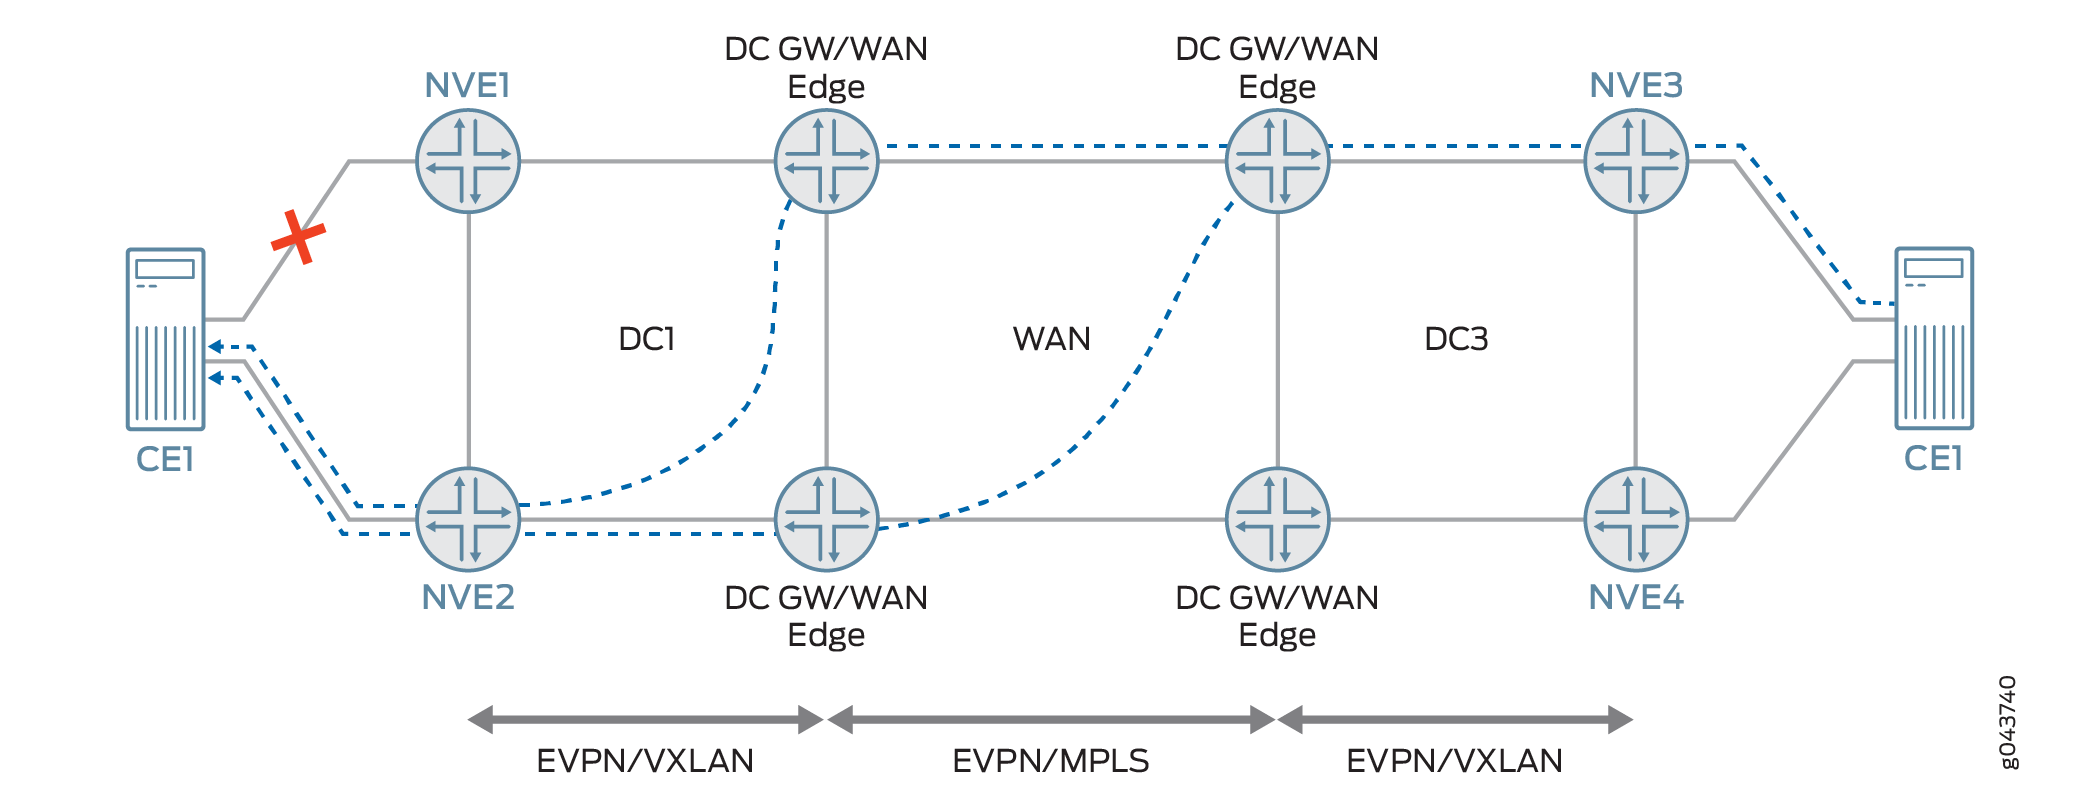 Evpn Vxlan Data Center Interconnect Through Mpls Wan Overview Topology Diagram Of Descreibed Network Is On Next Picture Host Vlan Load Balancing Among Redundant Dc Gw Edge Routers